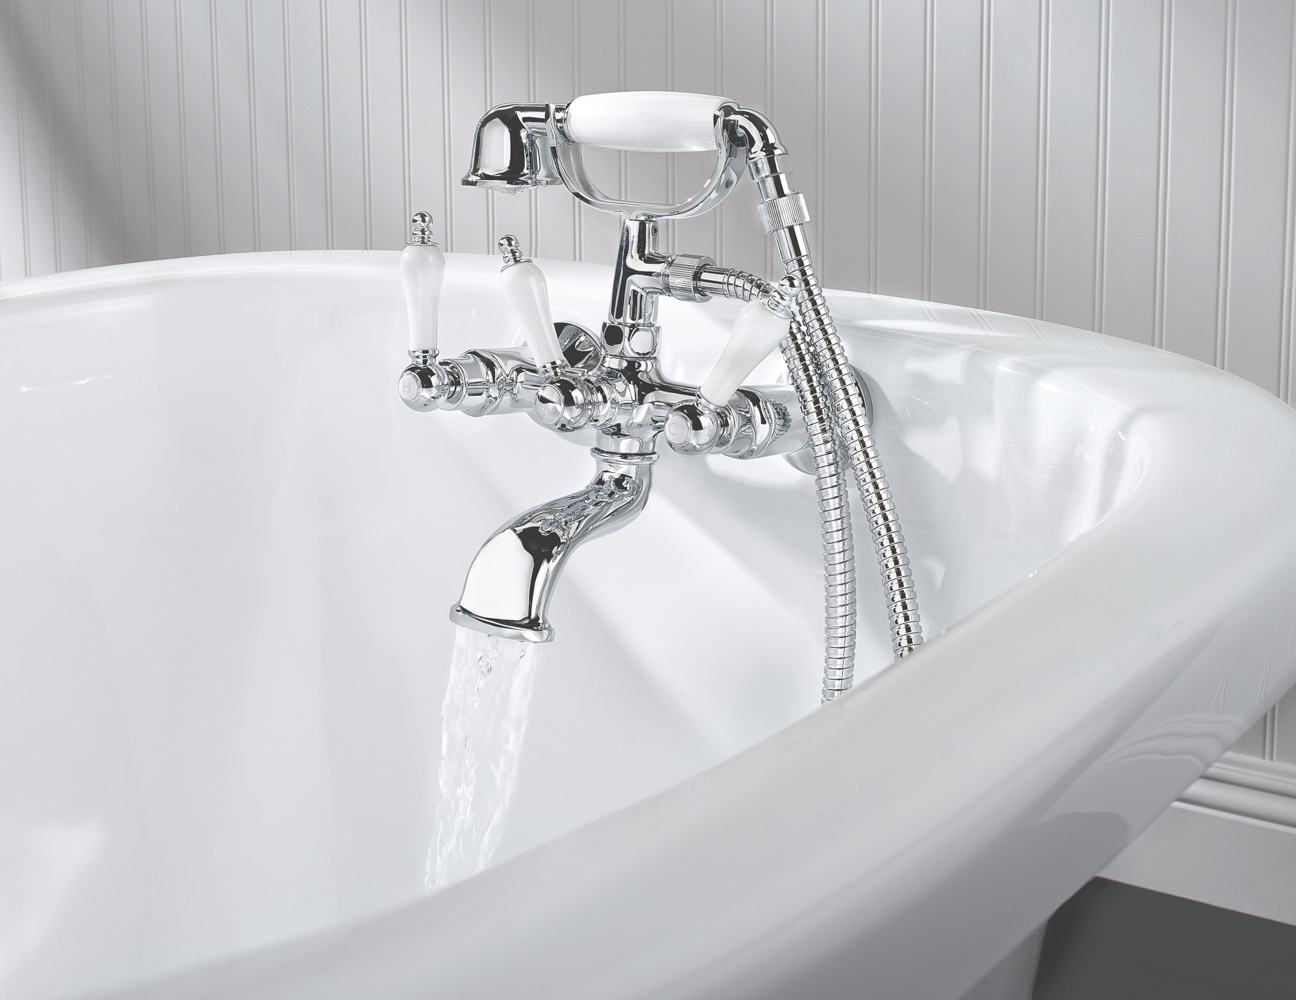 Tub Fixtures : Amazon.com: Pfister Savannah 3-Handle Tub & Shower Faucet with Metal ...